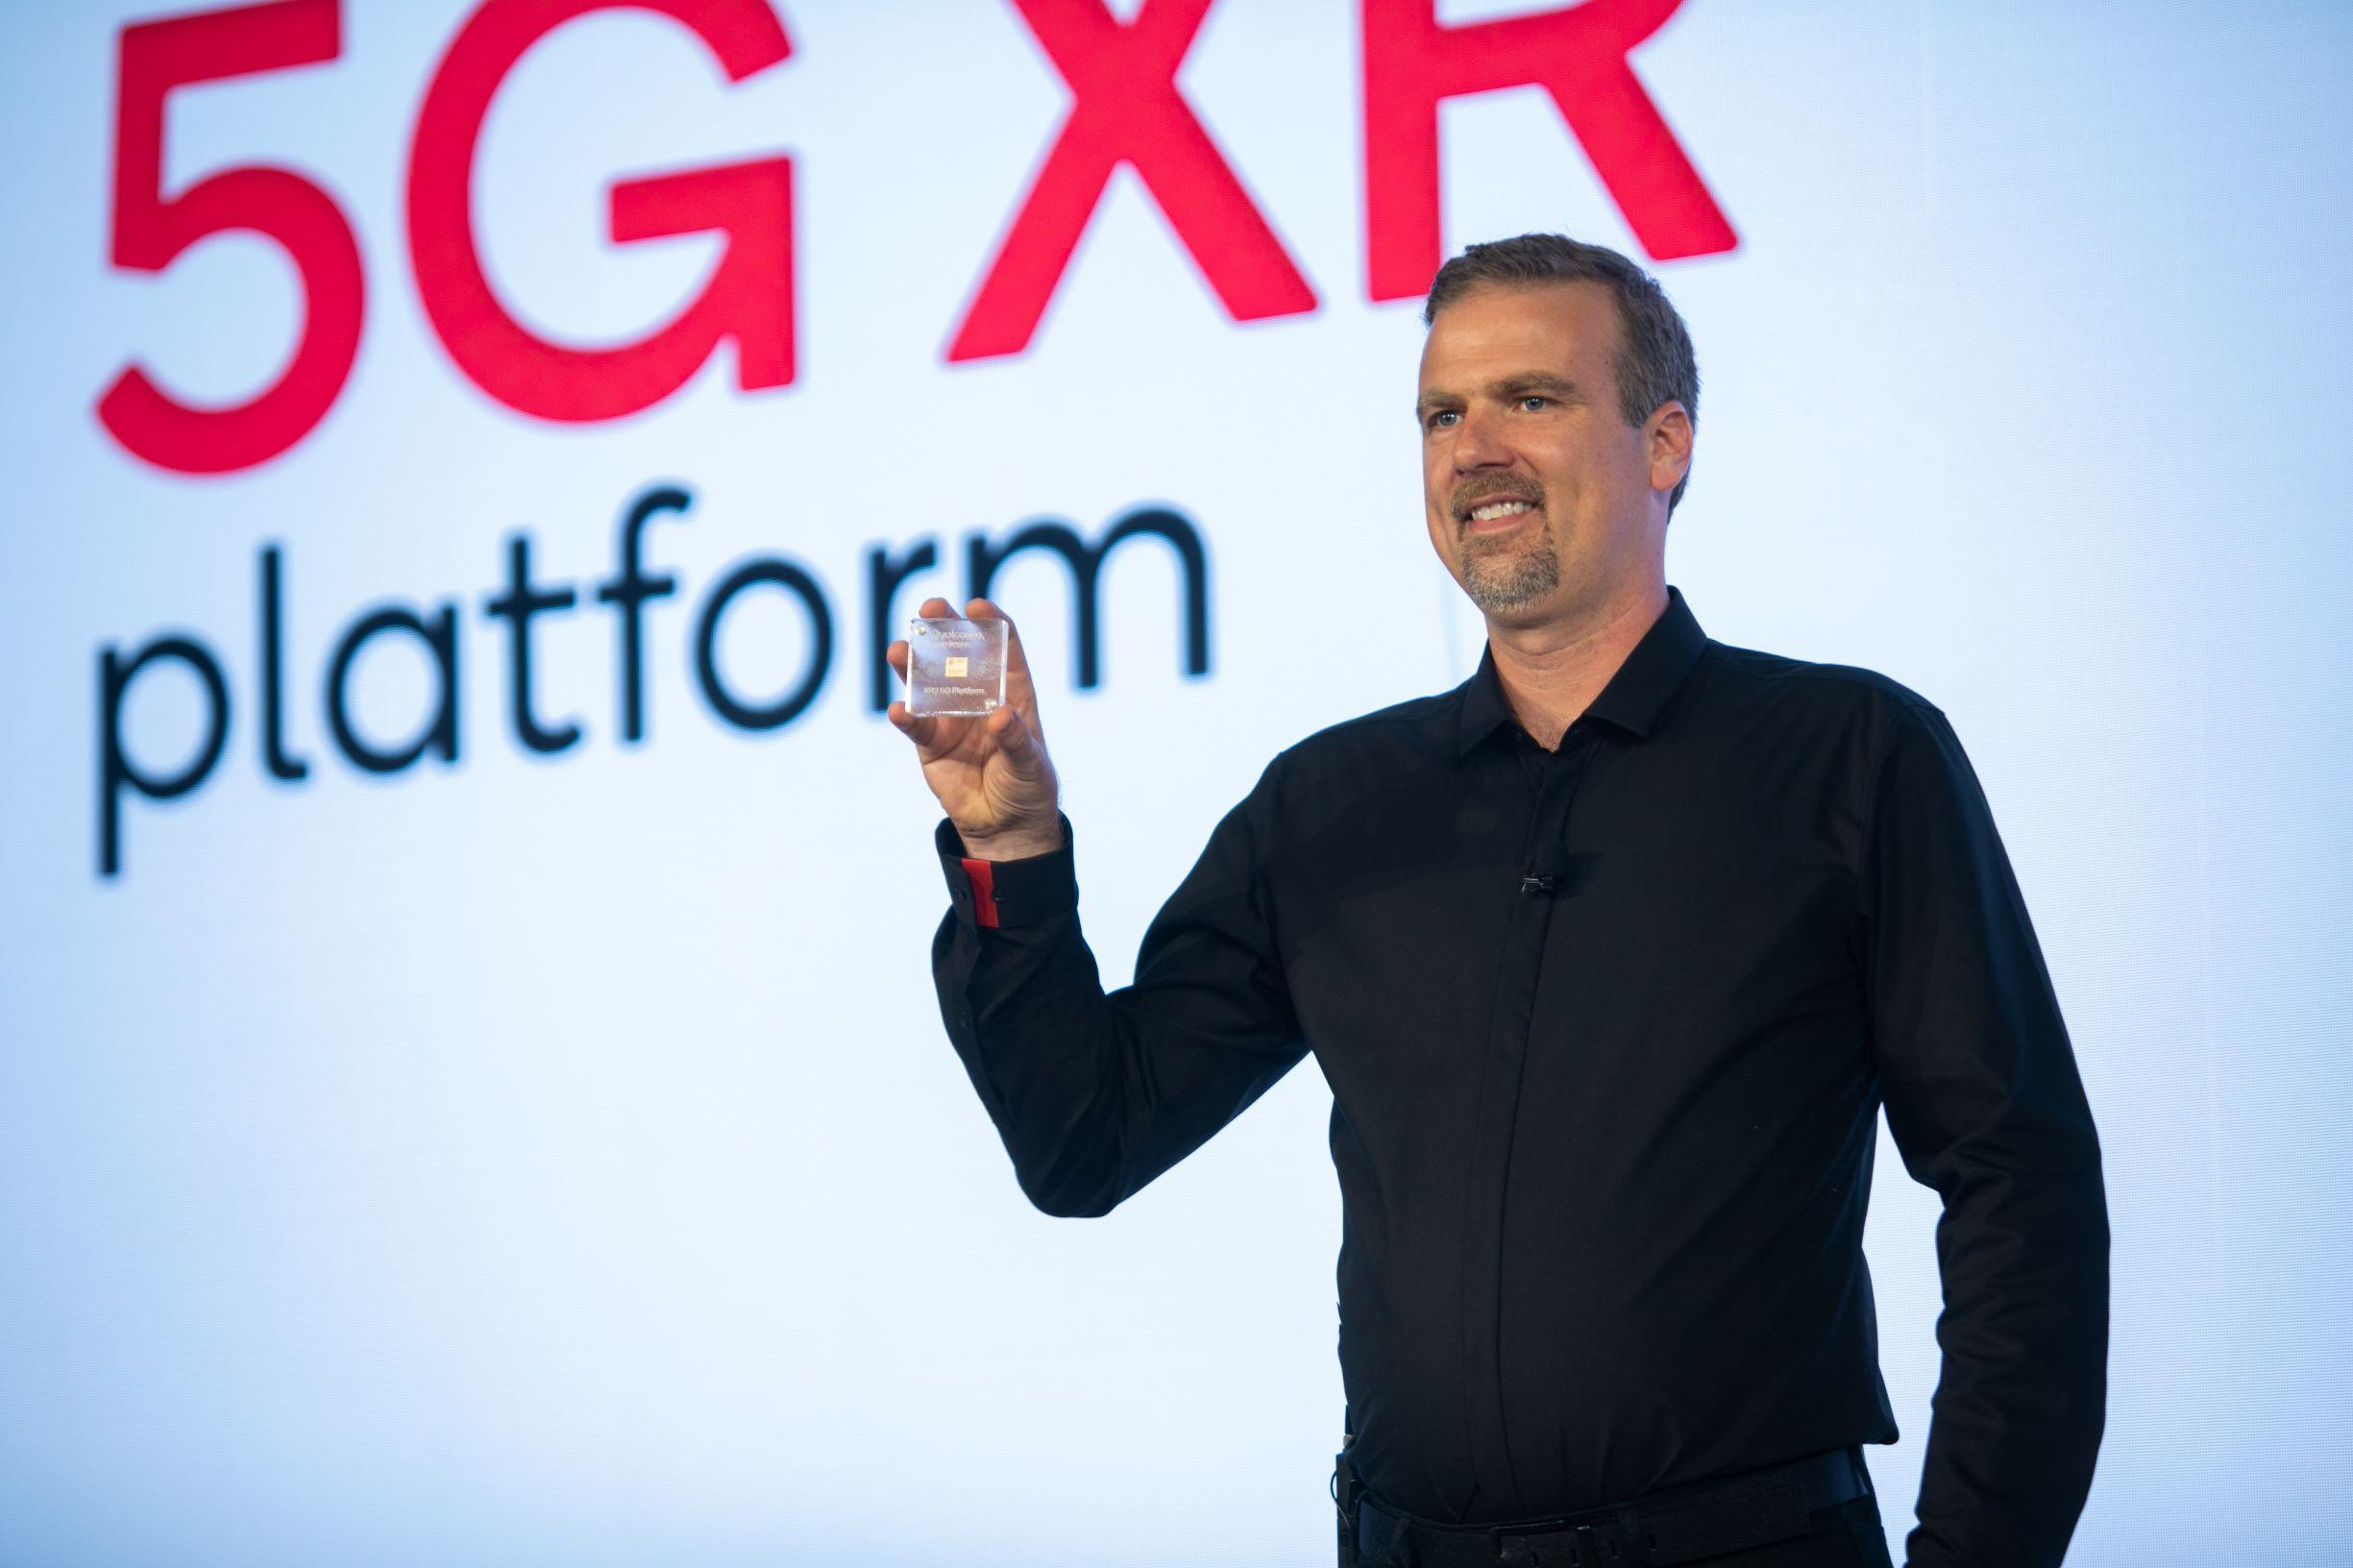 Qualcomm introduces 5G supporter XR platform | iTMunch